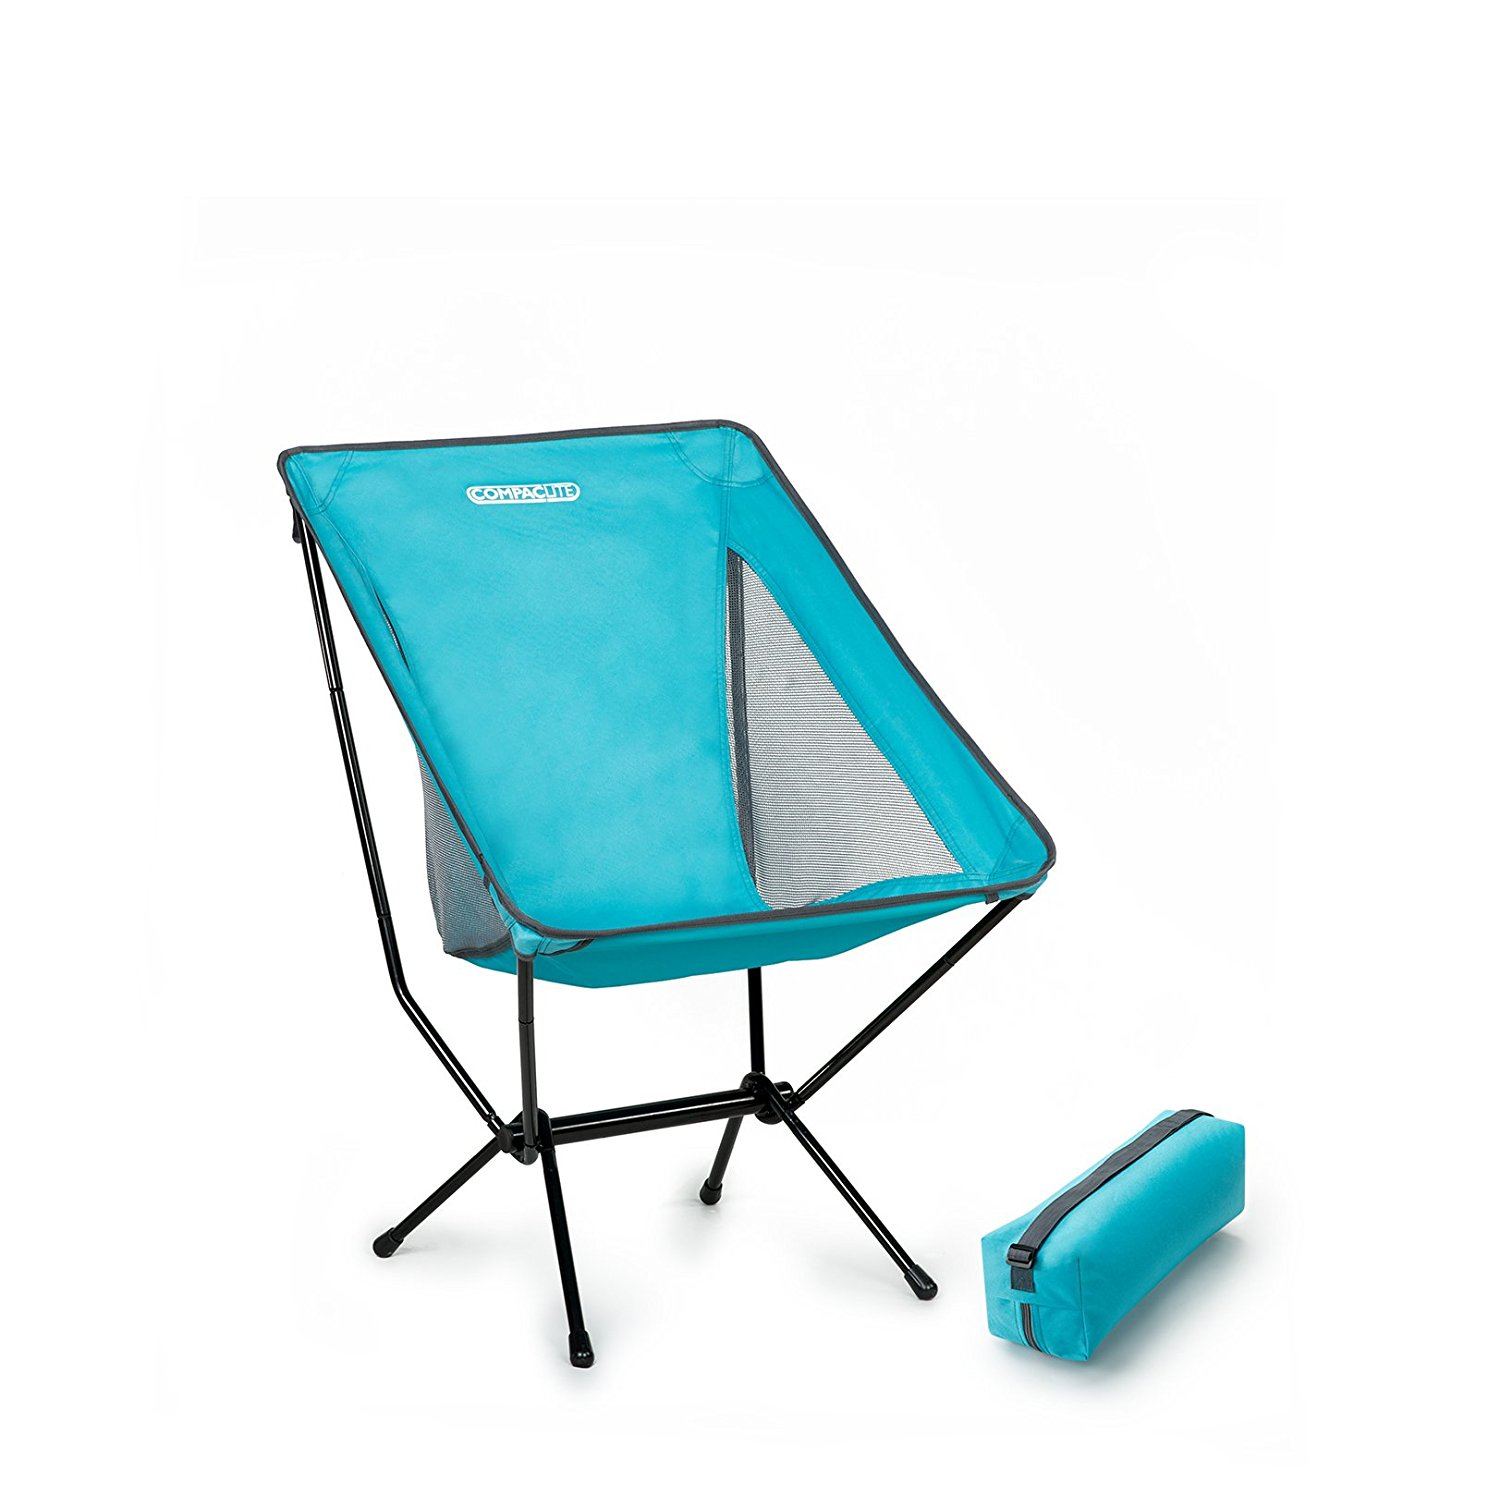 king kong folding chair walmart directors 10 best ultimately comfortable camping chairs - chairman